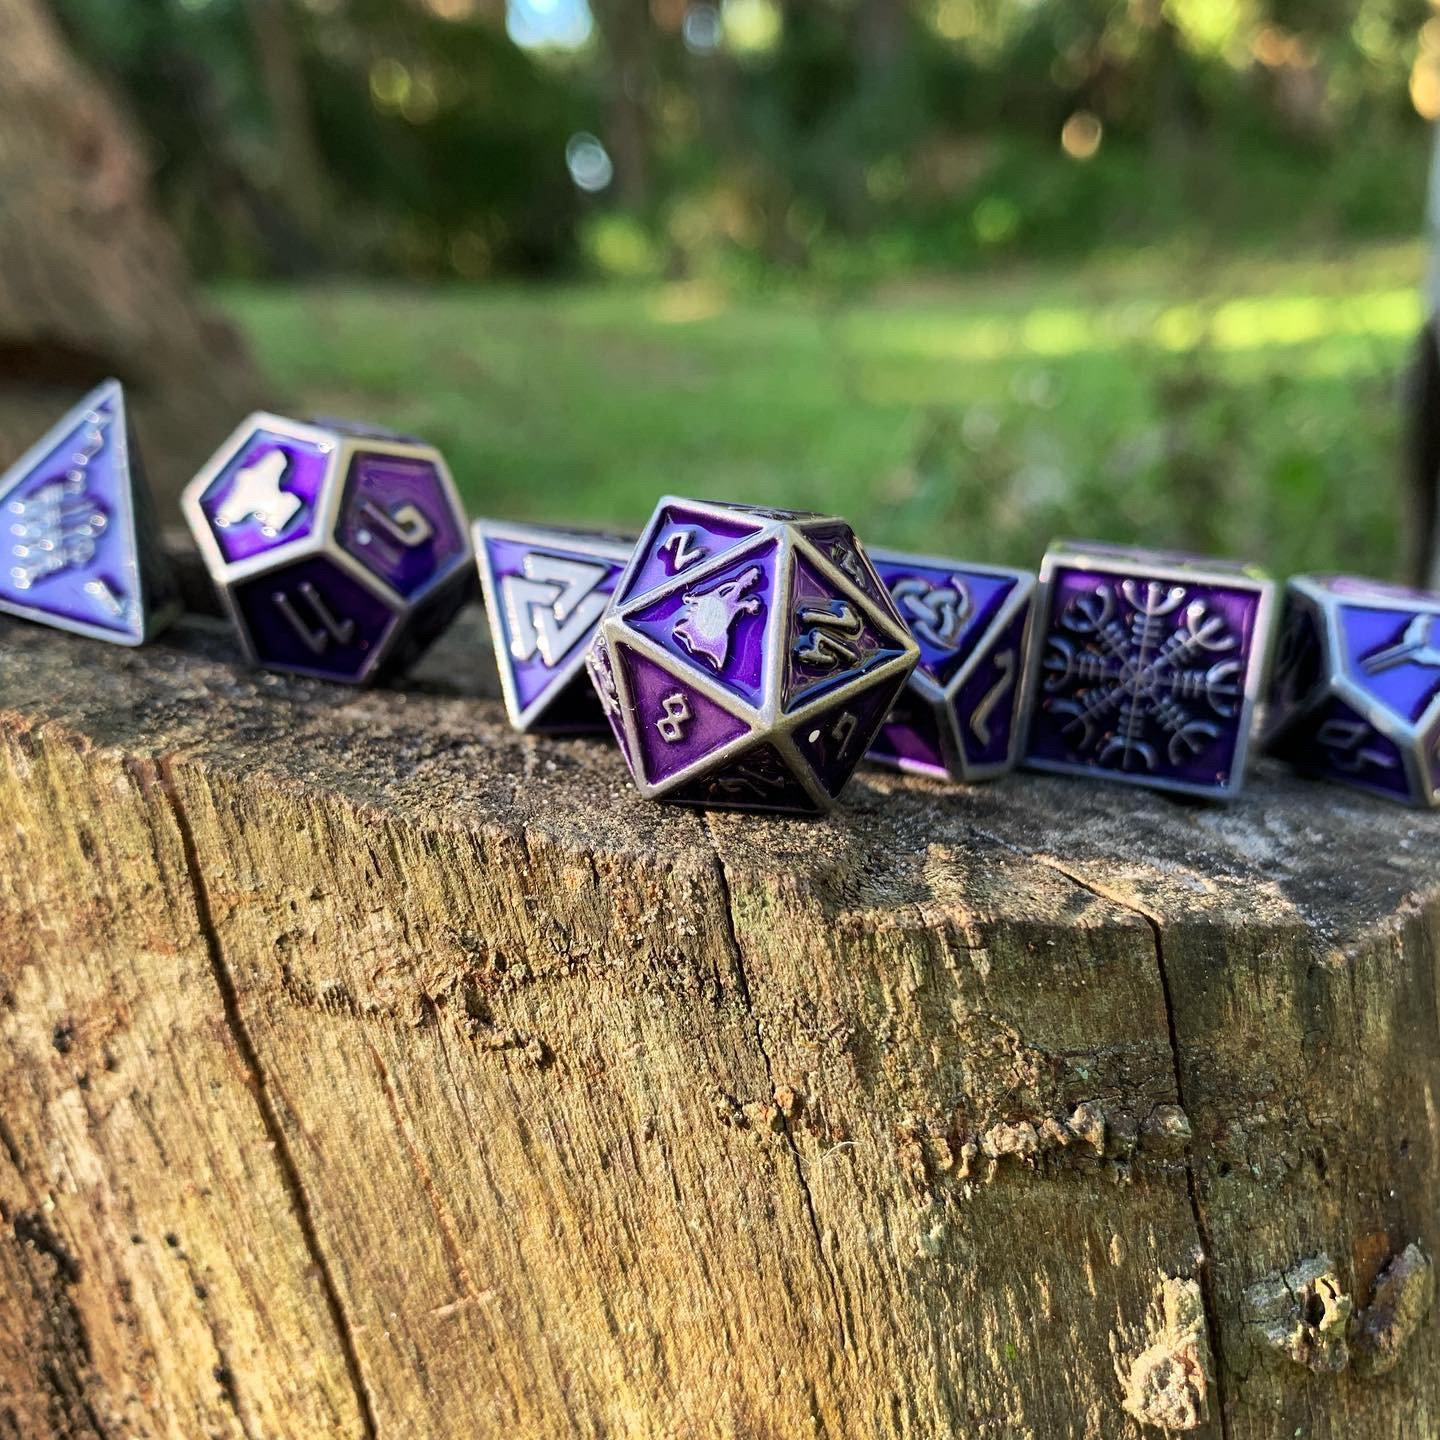 Doppelganger Norse Themed Metal Dice Set Norse Foundry Nothing, absolutely nothing, was my reply. doppelganger norse themed metal dice set